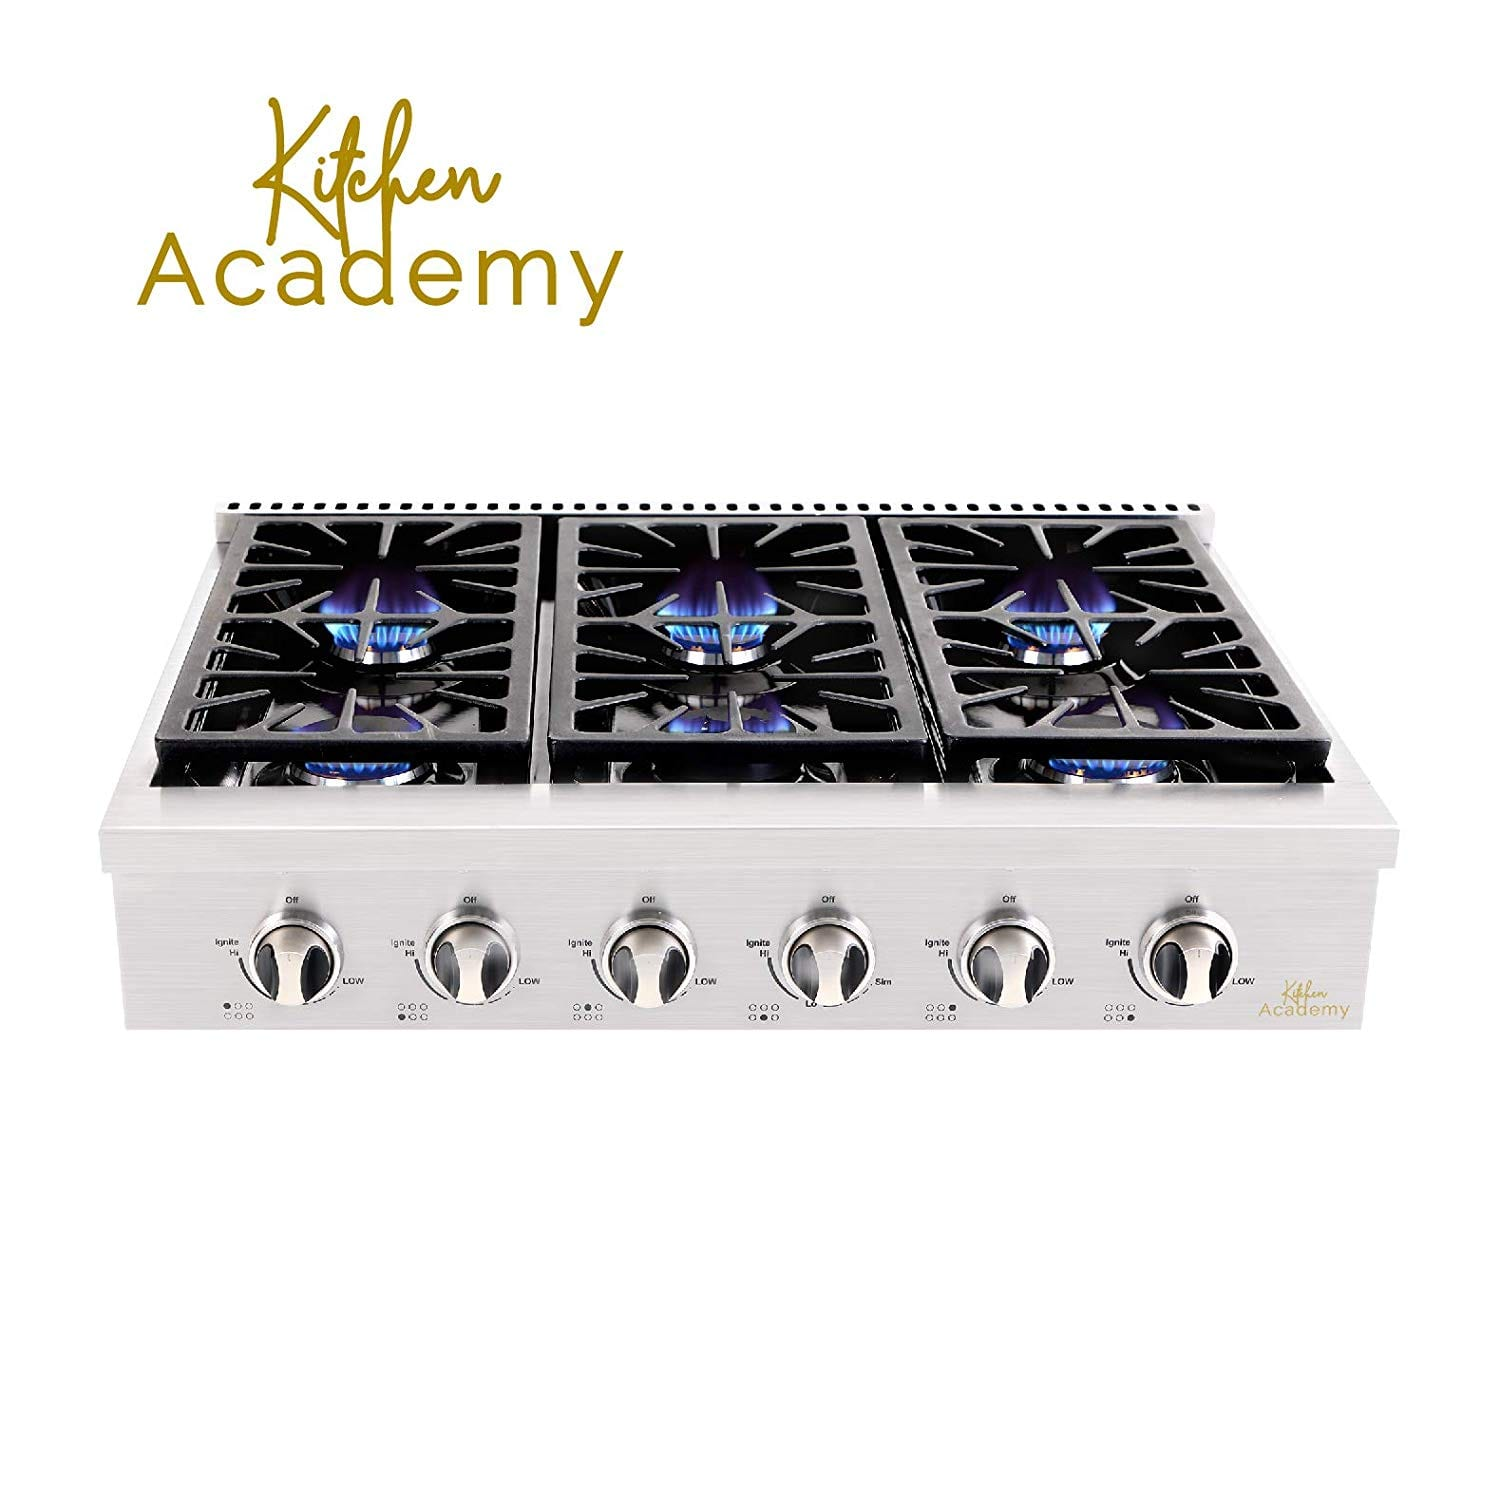 kitchen academy professional